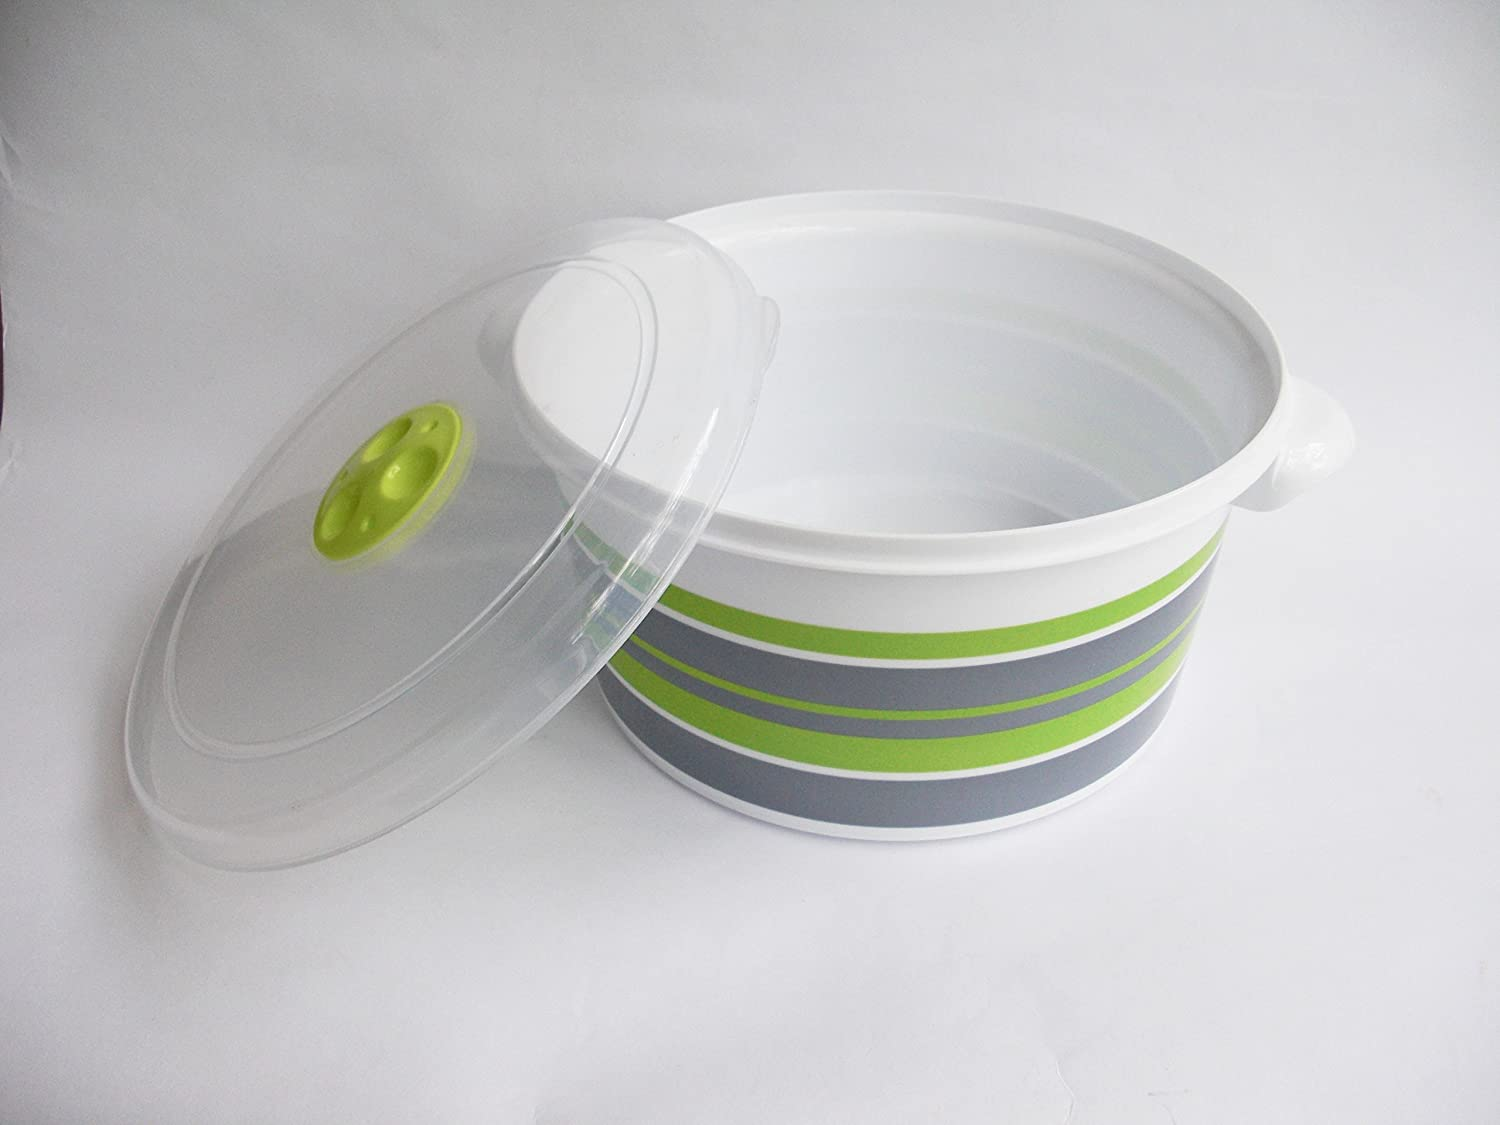 4 Sizes Set Heating Cooking Steamer Pot Tredoni 1L Microwave Pot Tub with Ventilated Lid 1 Liter